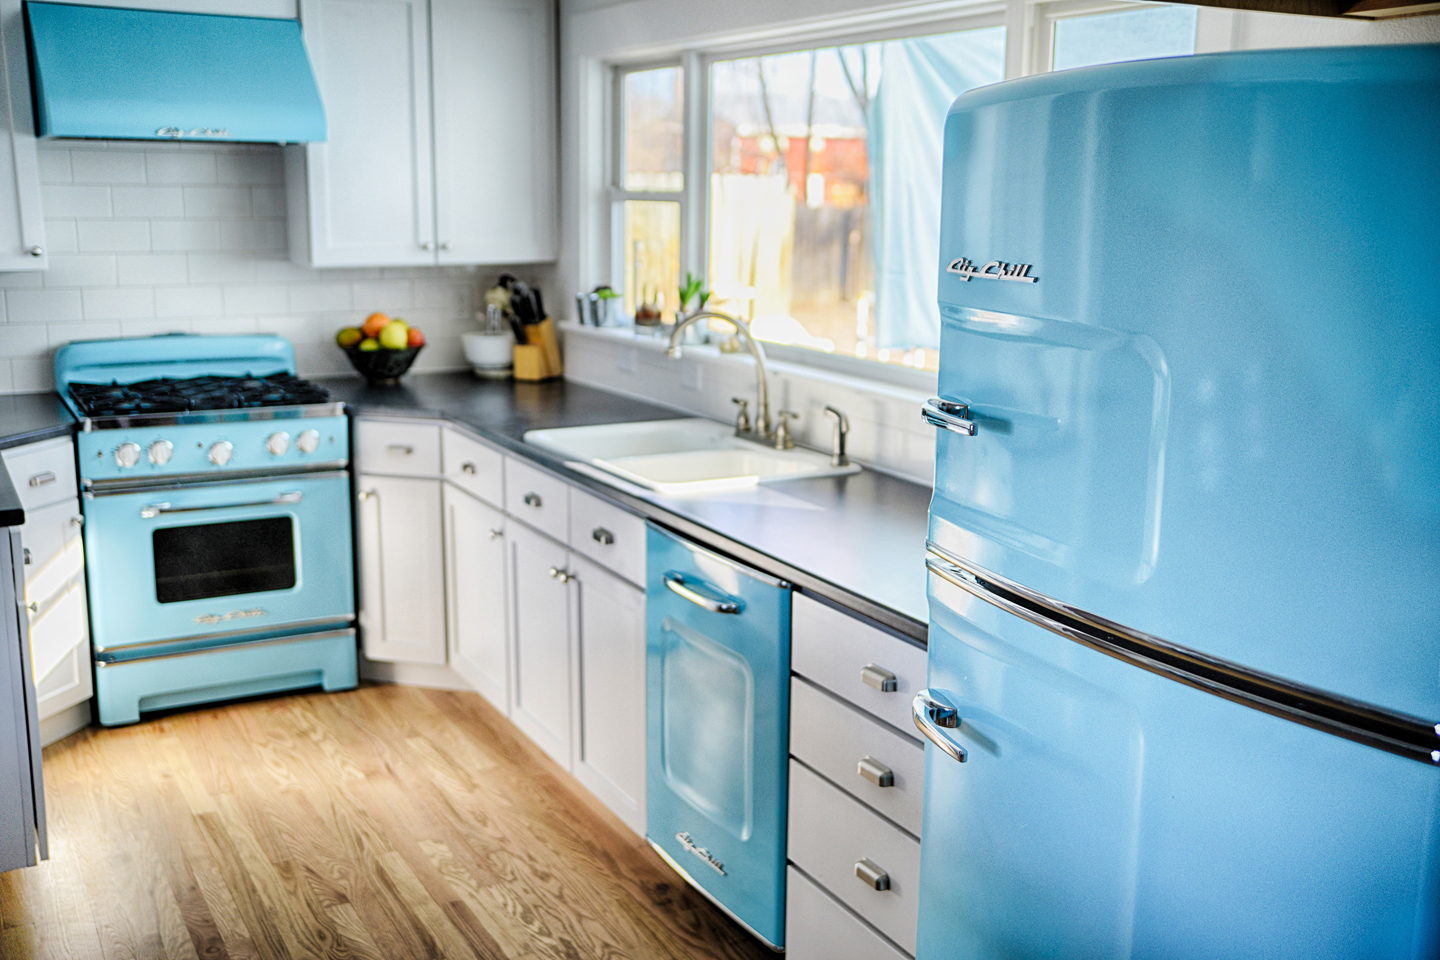 FREE Shipping Now Available on All Big Chill Appliances for Limited ...